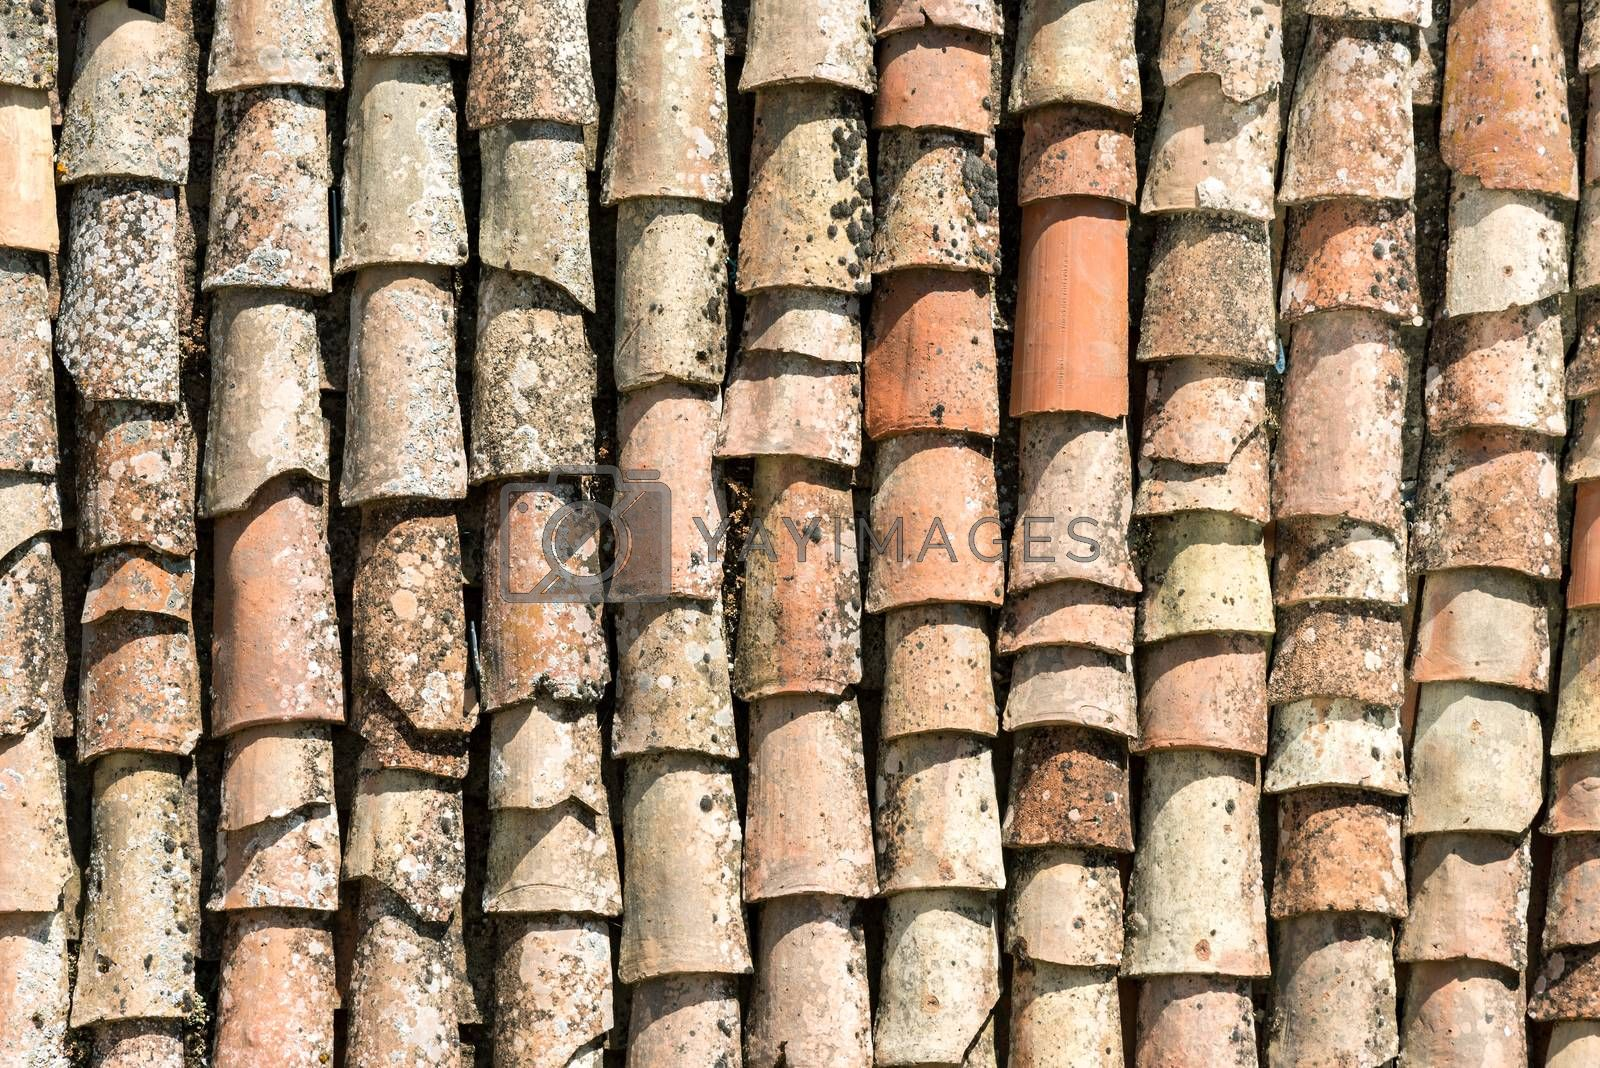 Background from old roof tiles seen in Gangi, Sicily